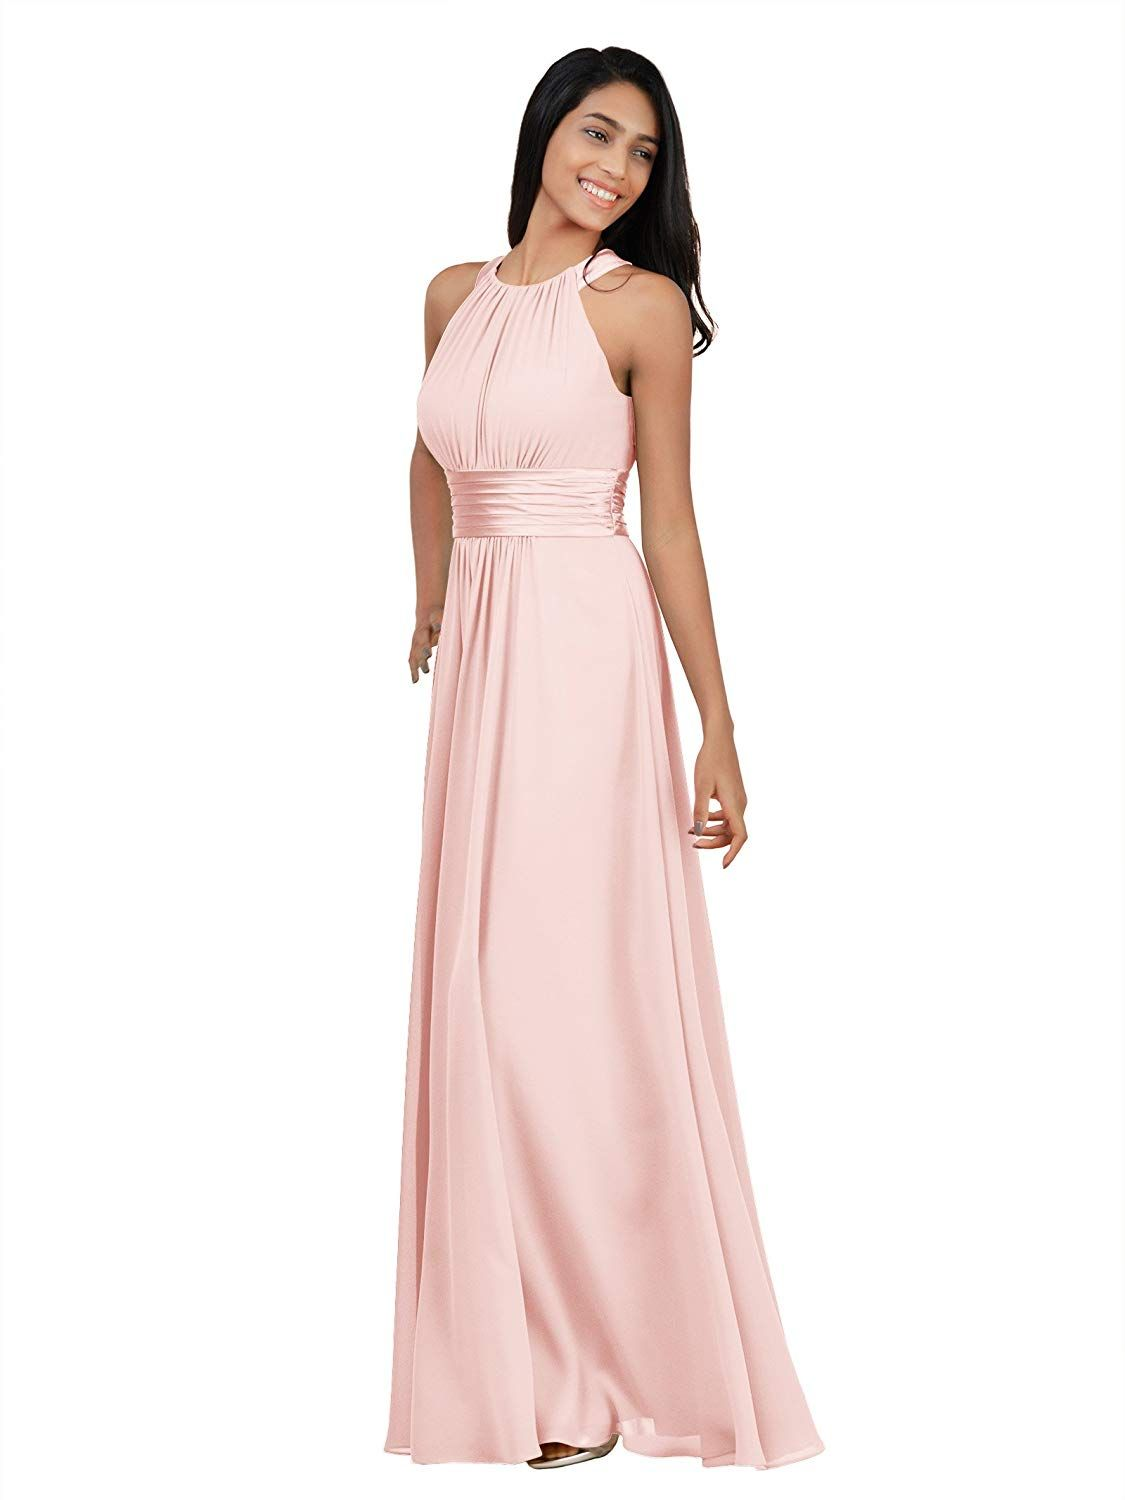 62f5b5e0912 Alicepub Bridesmaid Maxi Dresses Long for Women Formal Evening Party Prom  Gown Halter at Amazon Women s Clothing store